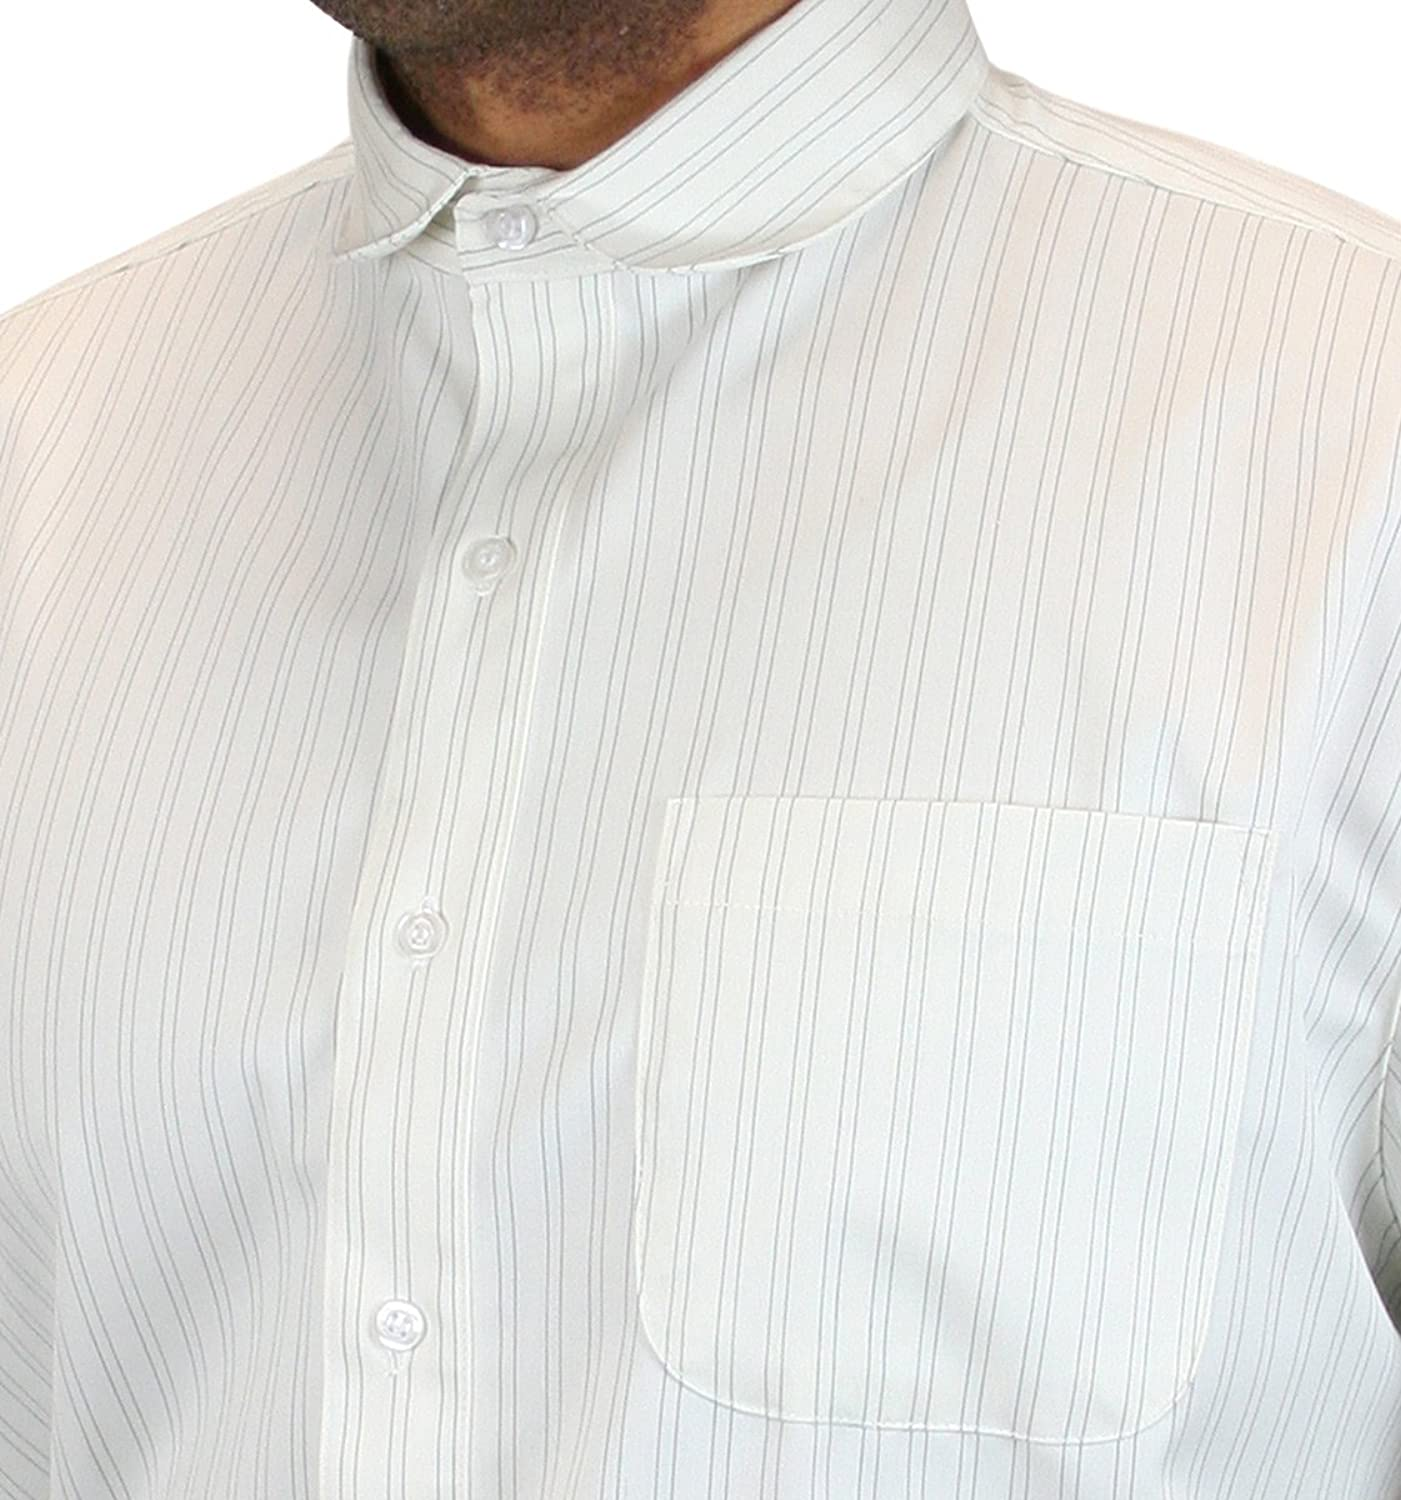 1920s Men's Dress Shirts Virgil Club Collar Dress Shirt $59.95 AT vintagedancer.com